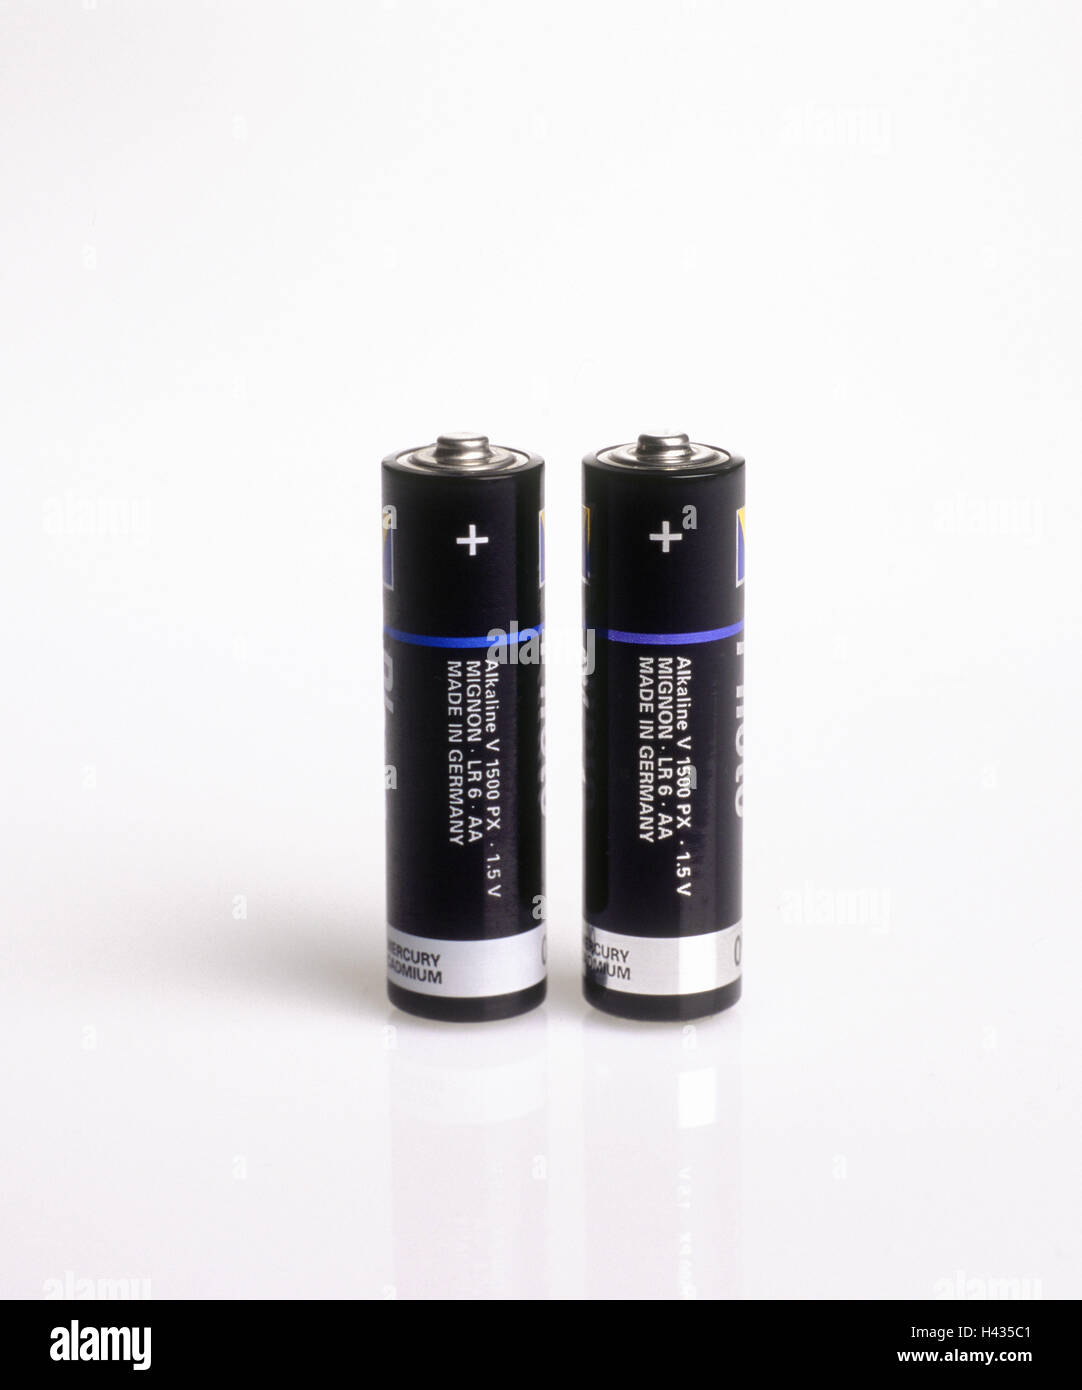 Aa Batterien Batteries Two Aa Alkaline Batterien Symbol Energy Stream